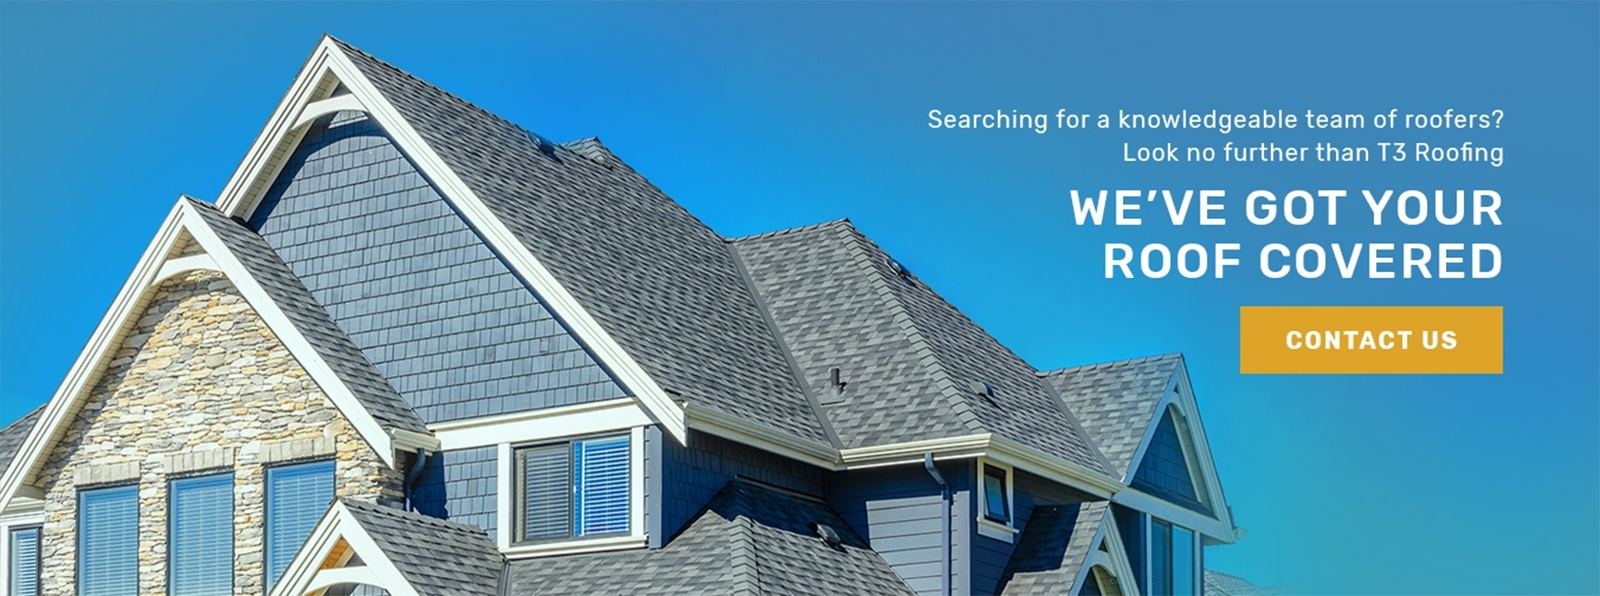 Residential Roofing Company in Denver, CO